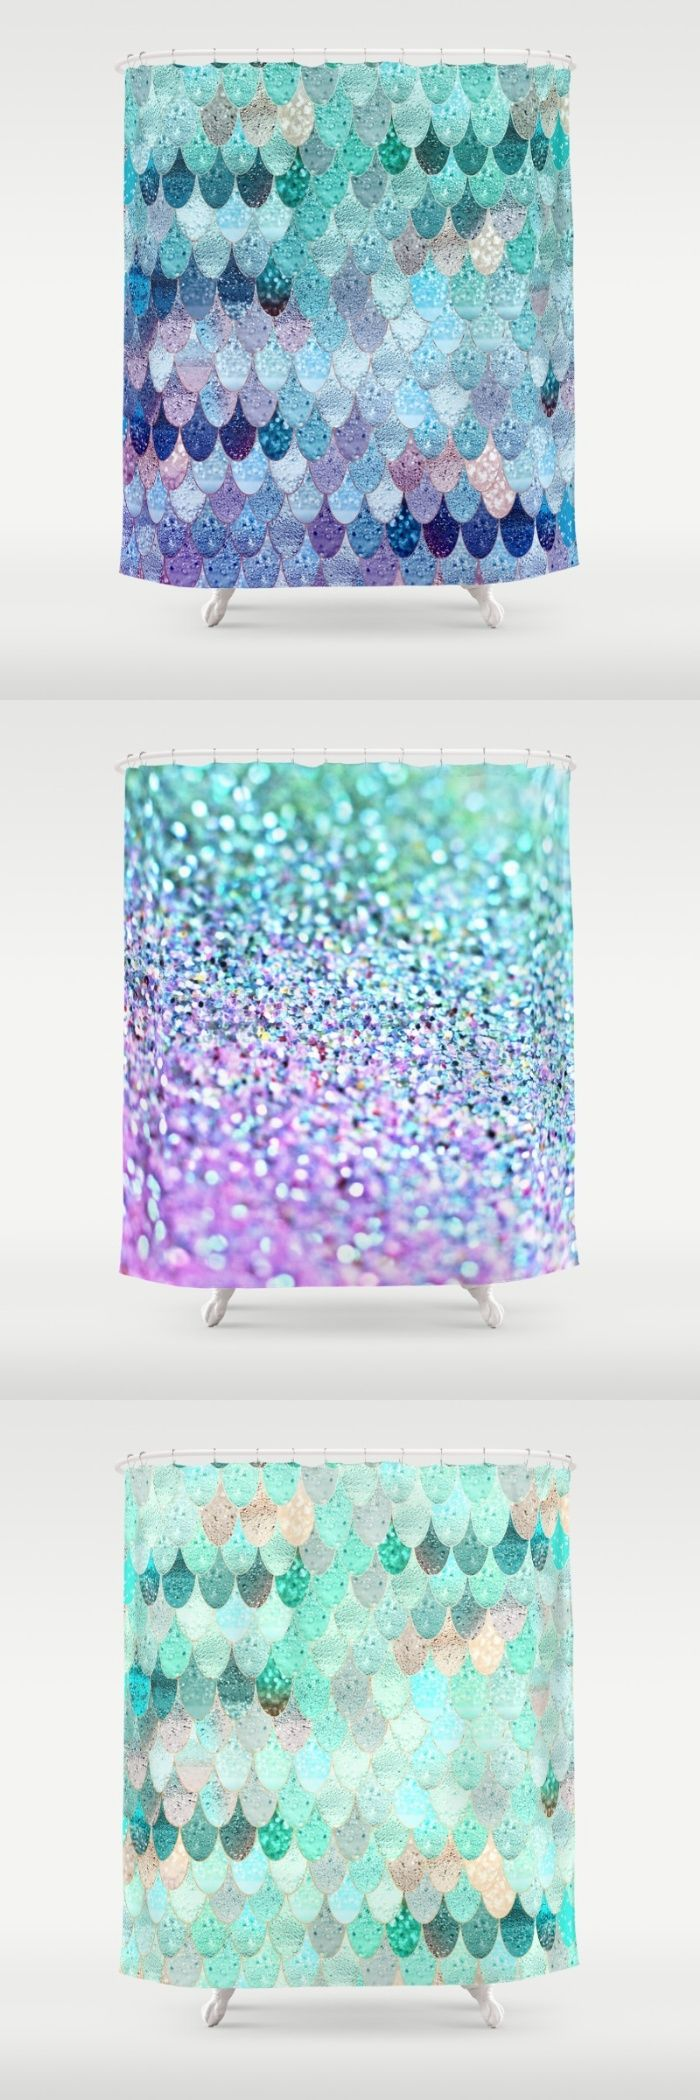 Mermaid bathroom - Summer Mermaid Ii Shower Curtain